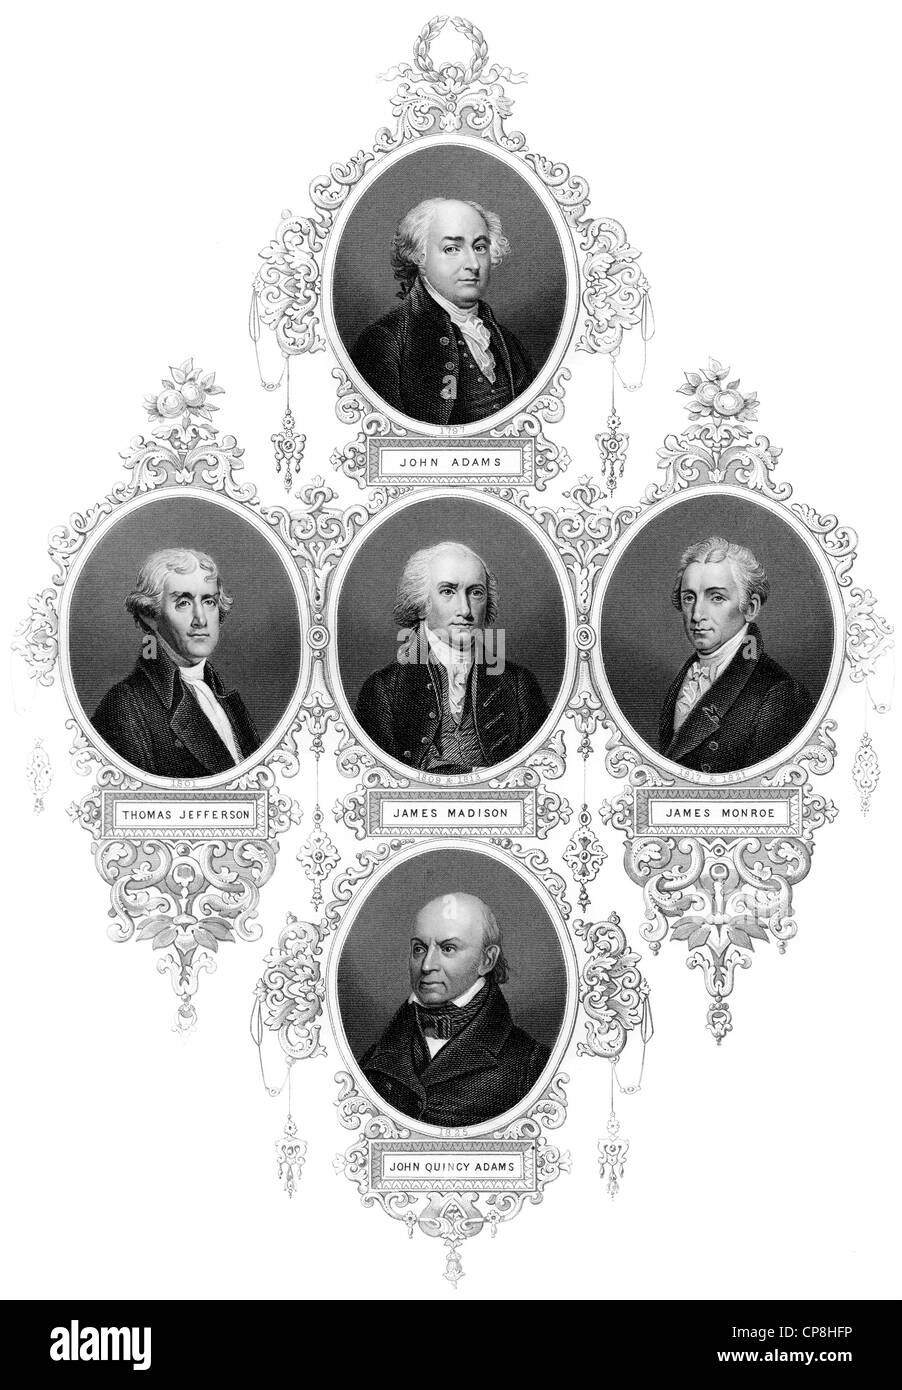 characterization of thomas jefferson the president of the united states At the bottom of that letter jefferson wrote i, thomas jefferson, president of the united states of america, have written this letter of general credit for you with my.